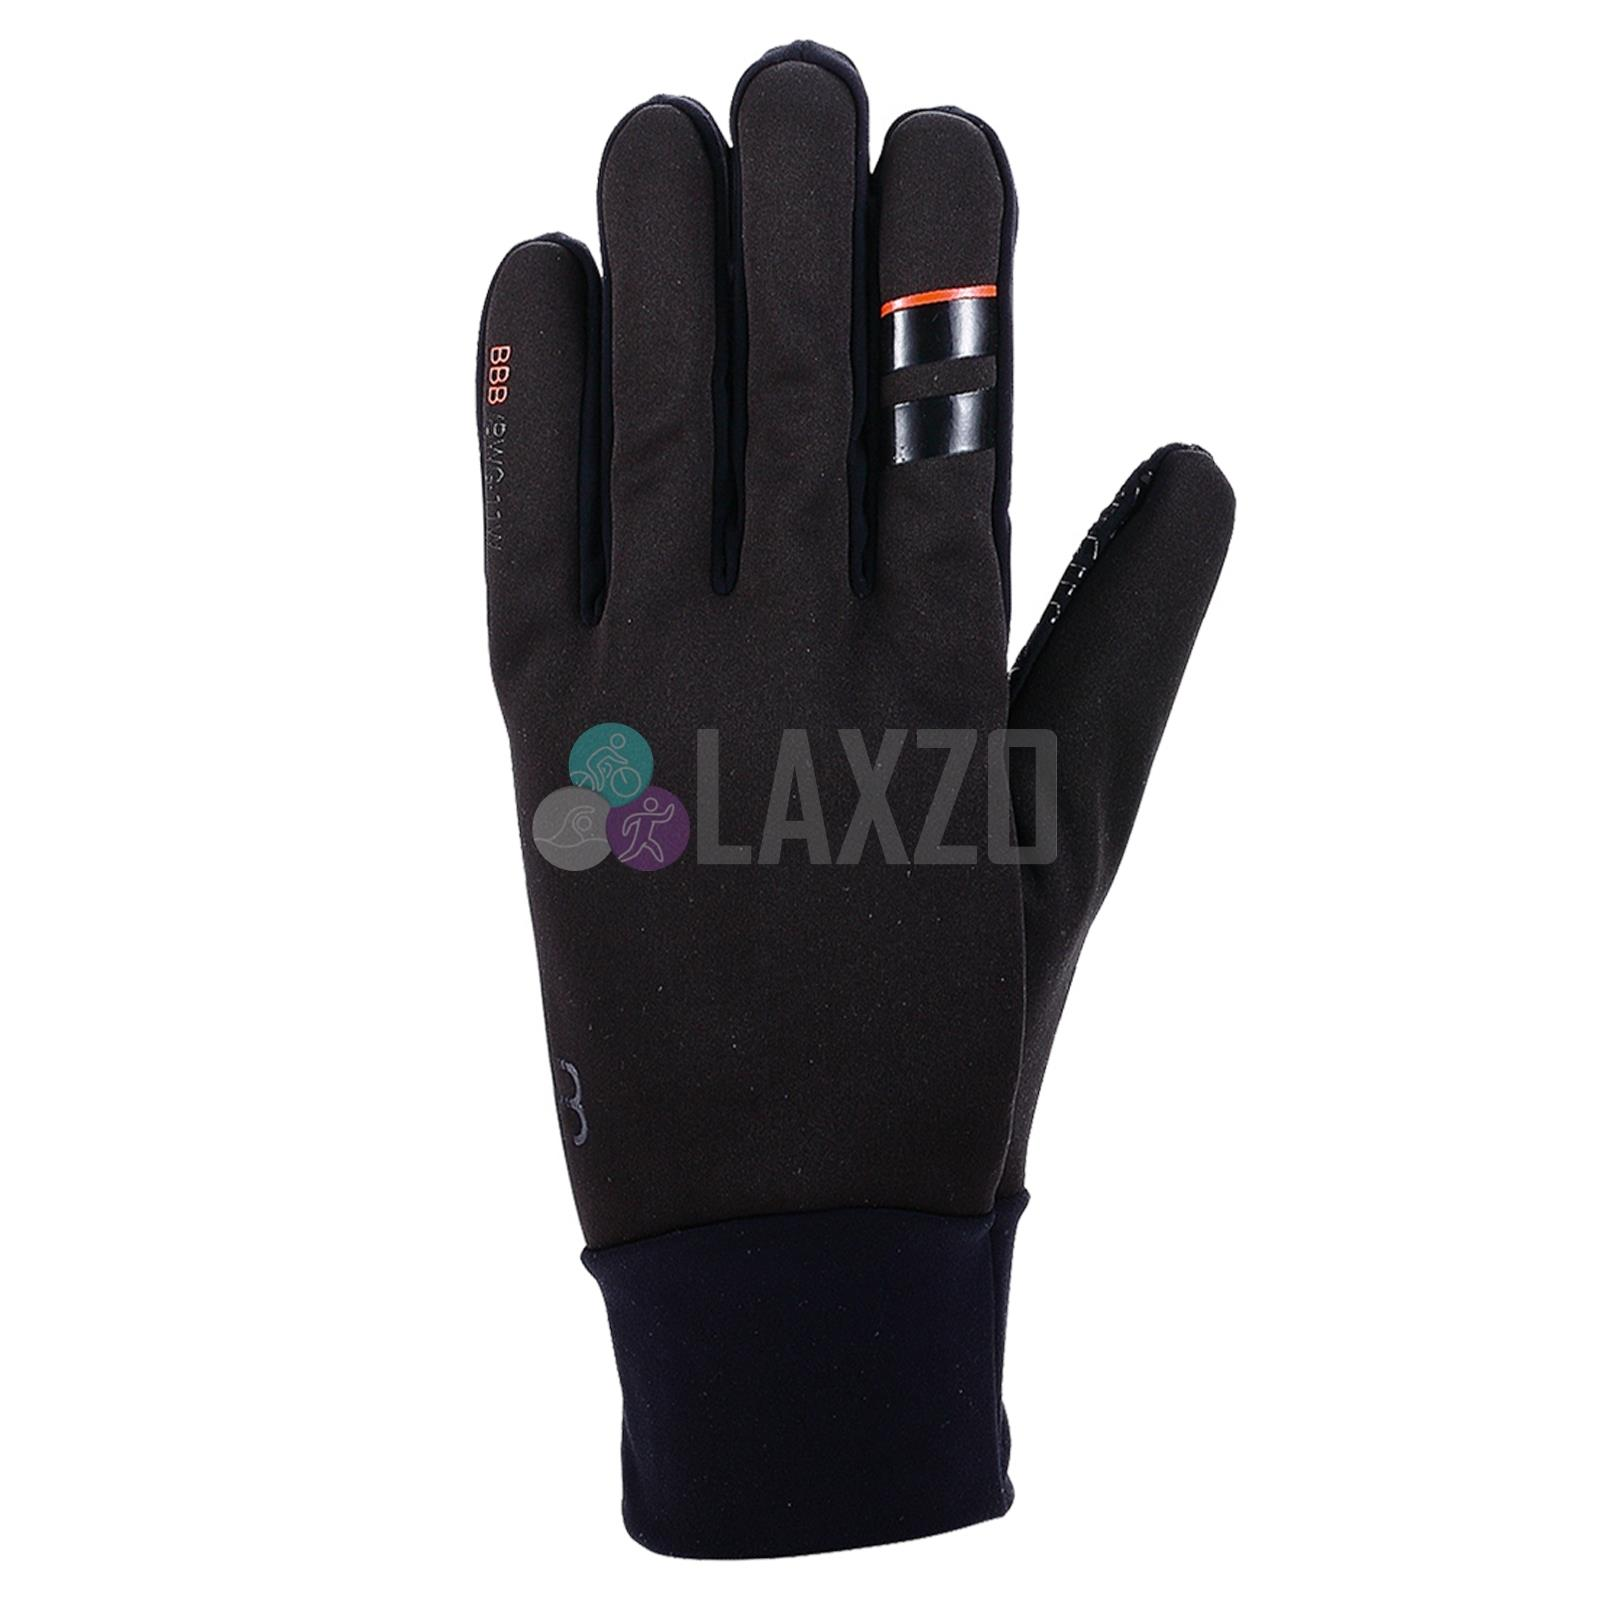 BBB Coldzone Winter Gloves New with Tags